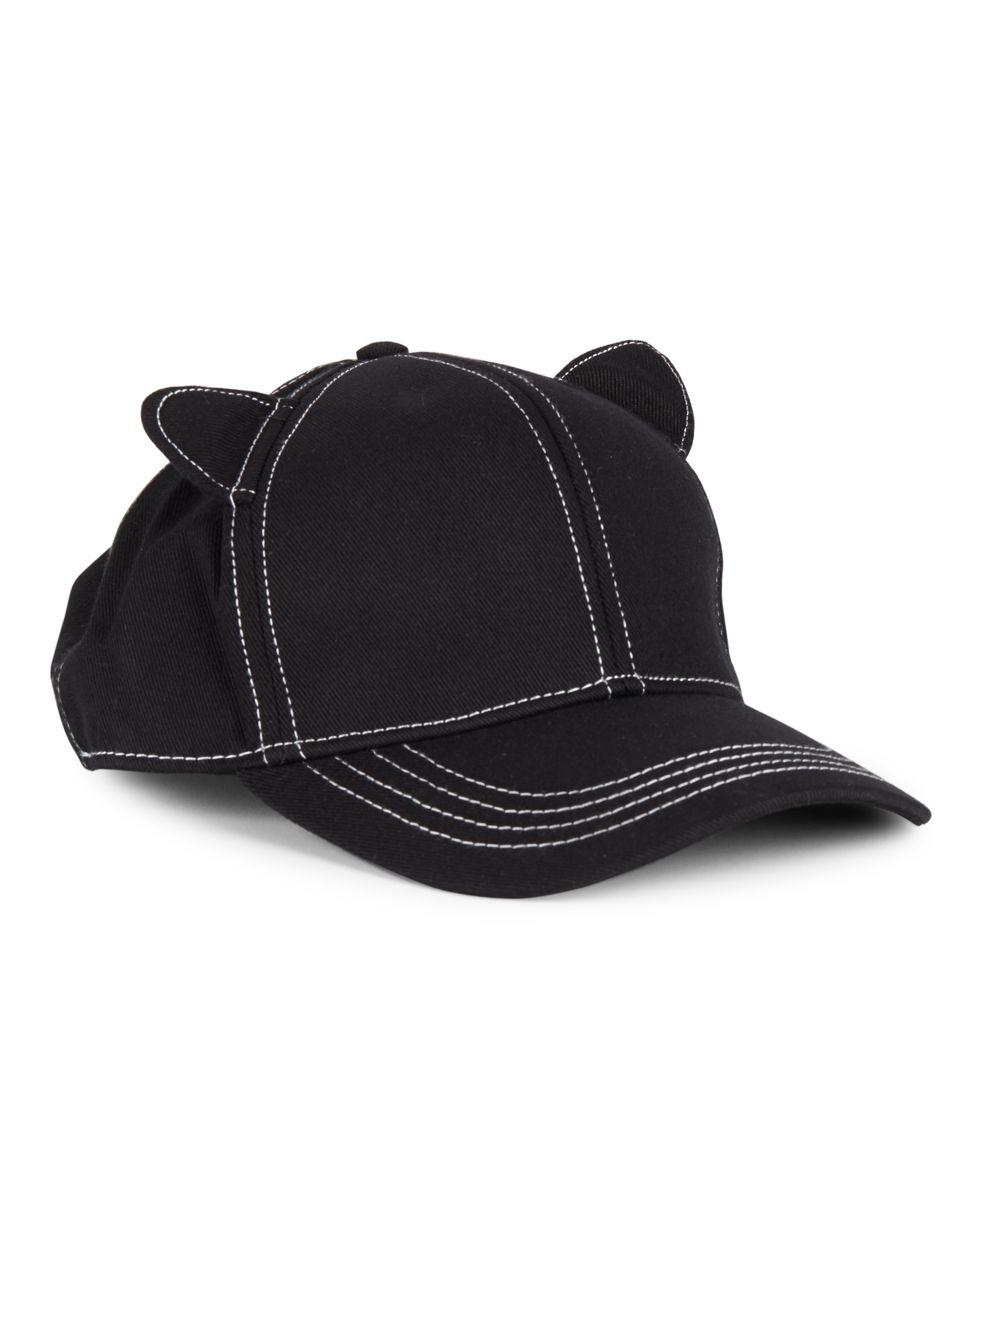 4a40839bf82e1 Karl Lagerfeld Cat Ears Baseball Hat In Black For Men Lyst